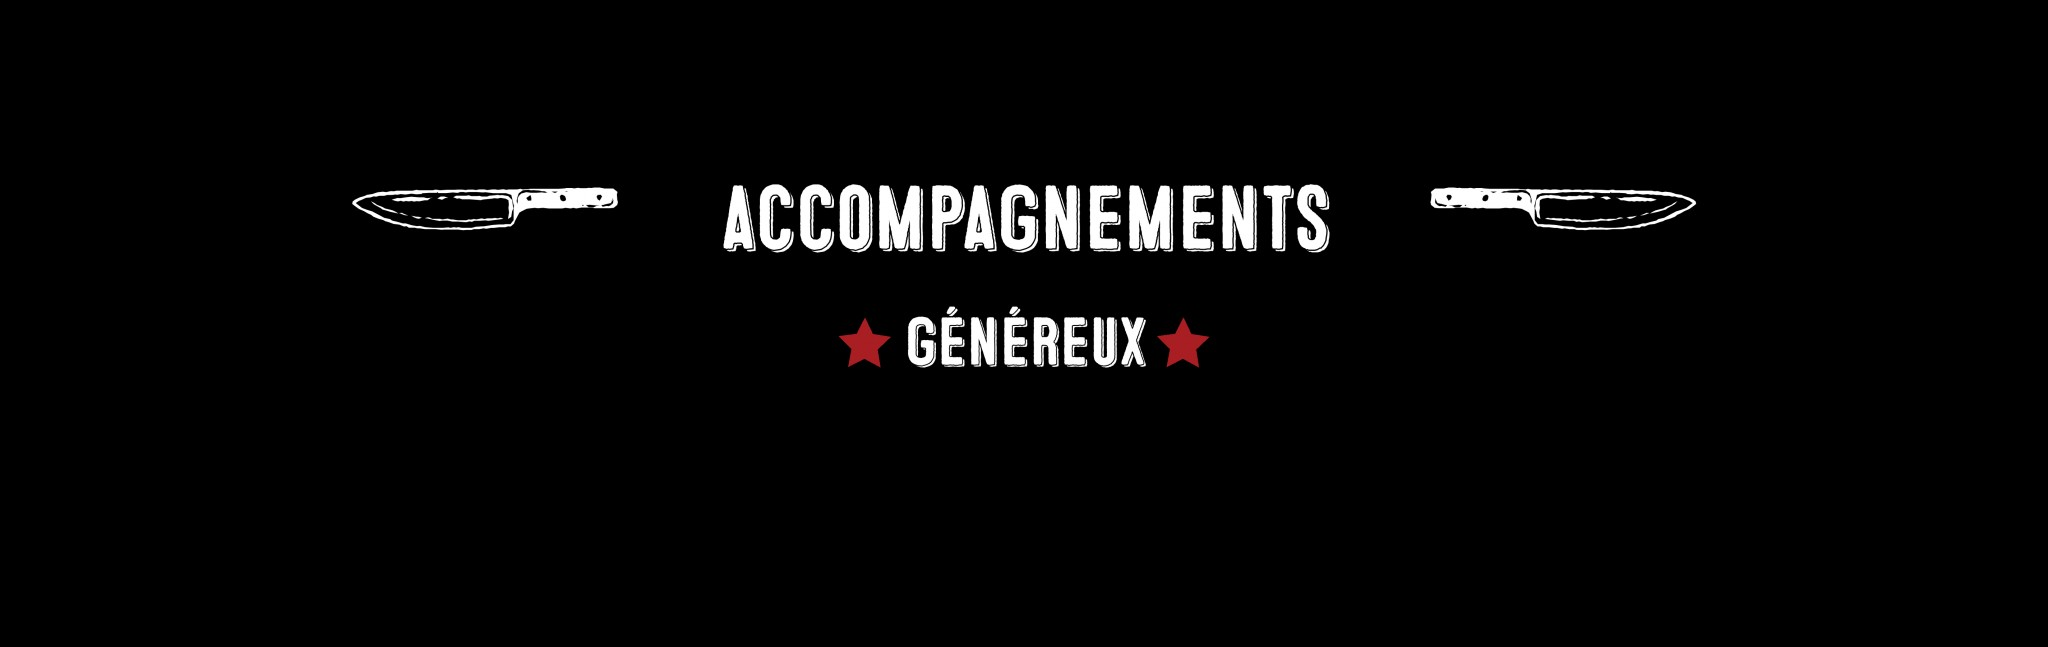 Accompagnements